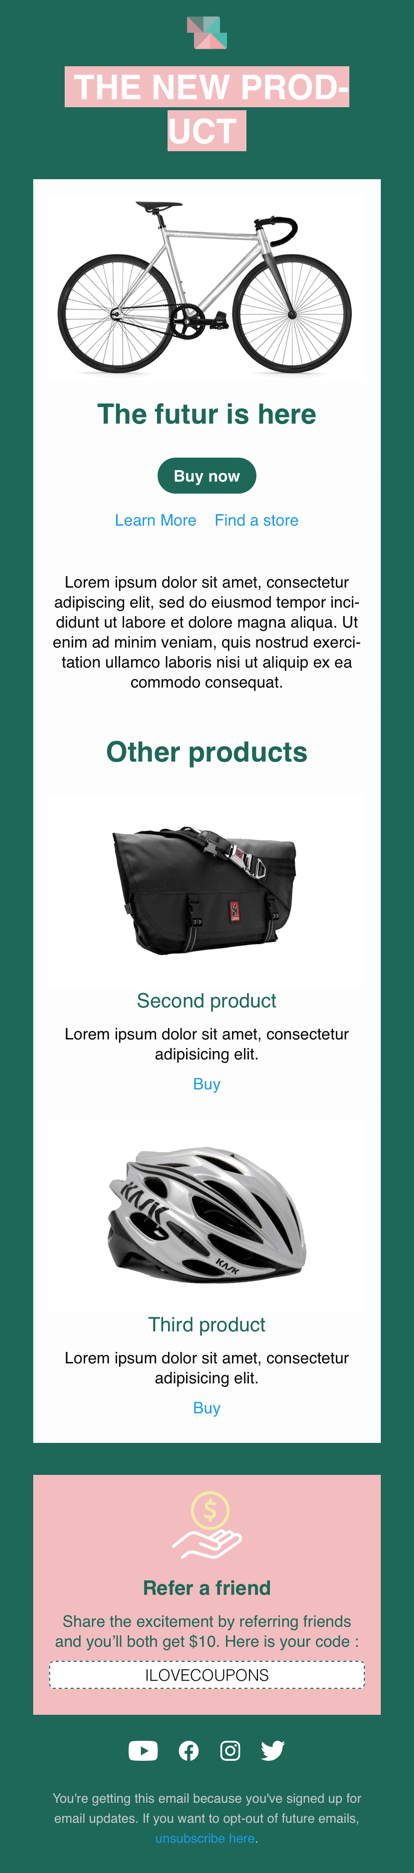 Screenshot of Squared product email display on iPhone Mail